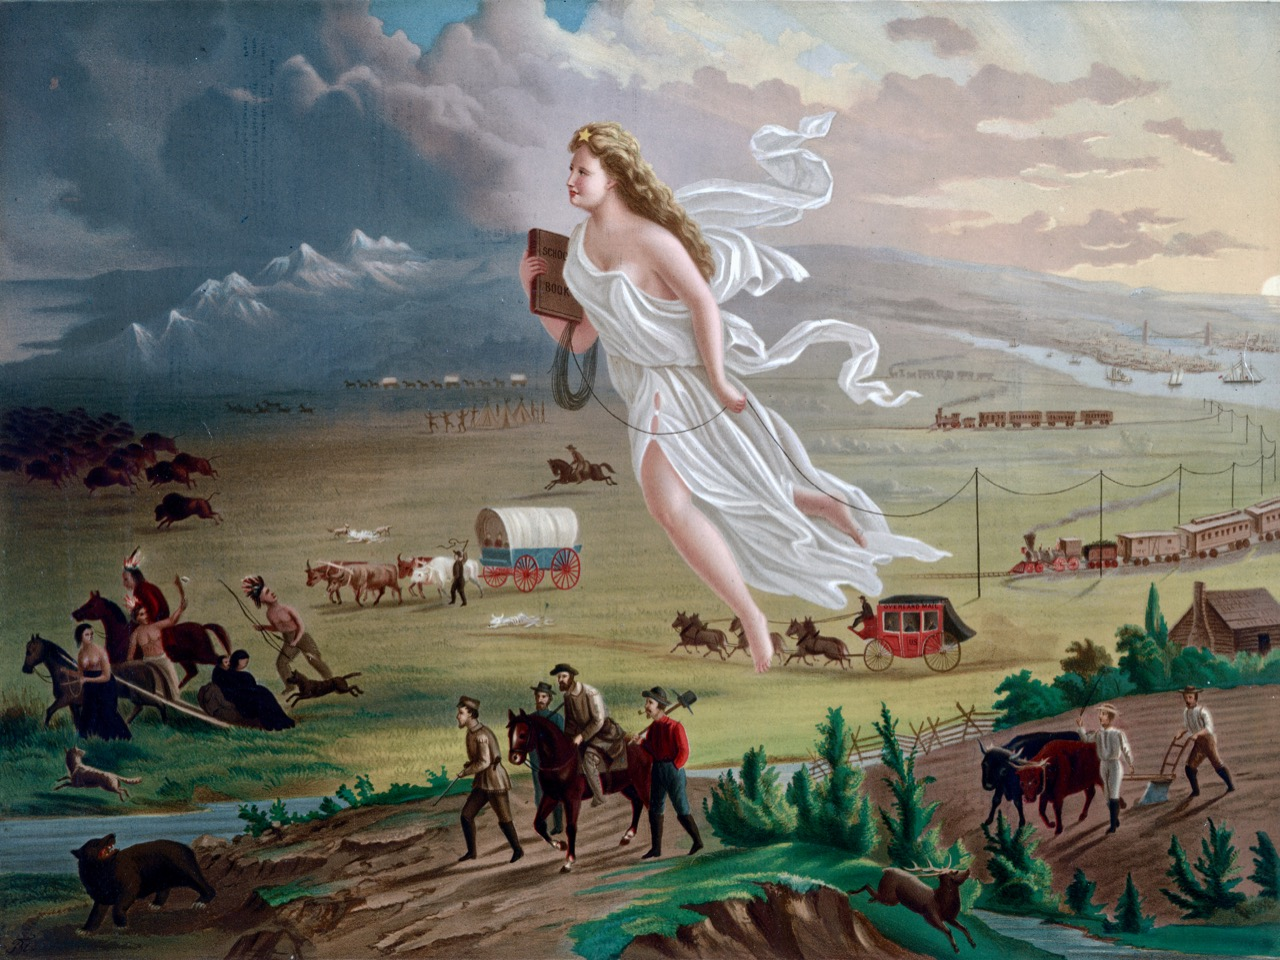 Elizabeth Cook-Lynn: I'm tired of the White American history of Manifest Destiny